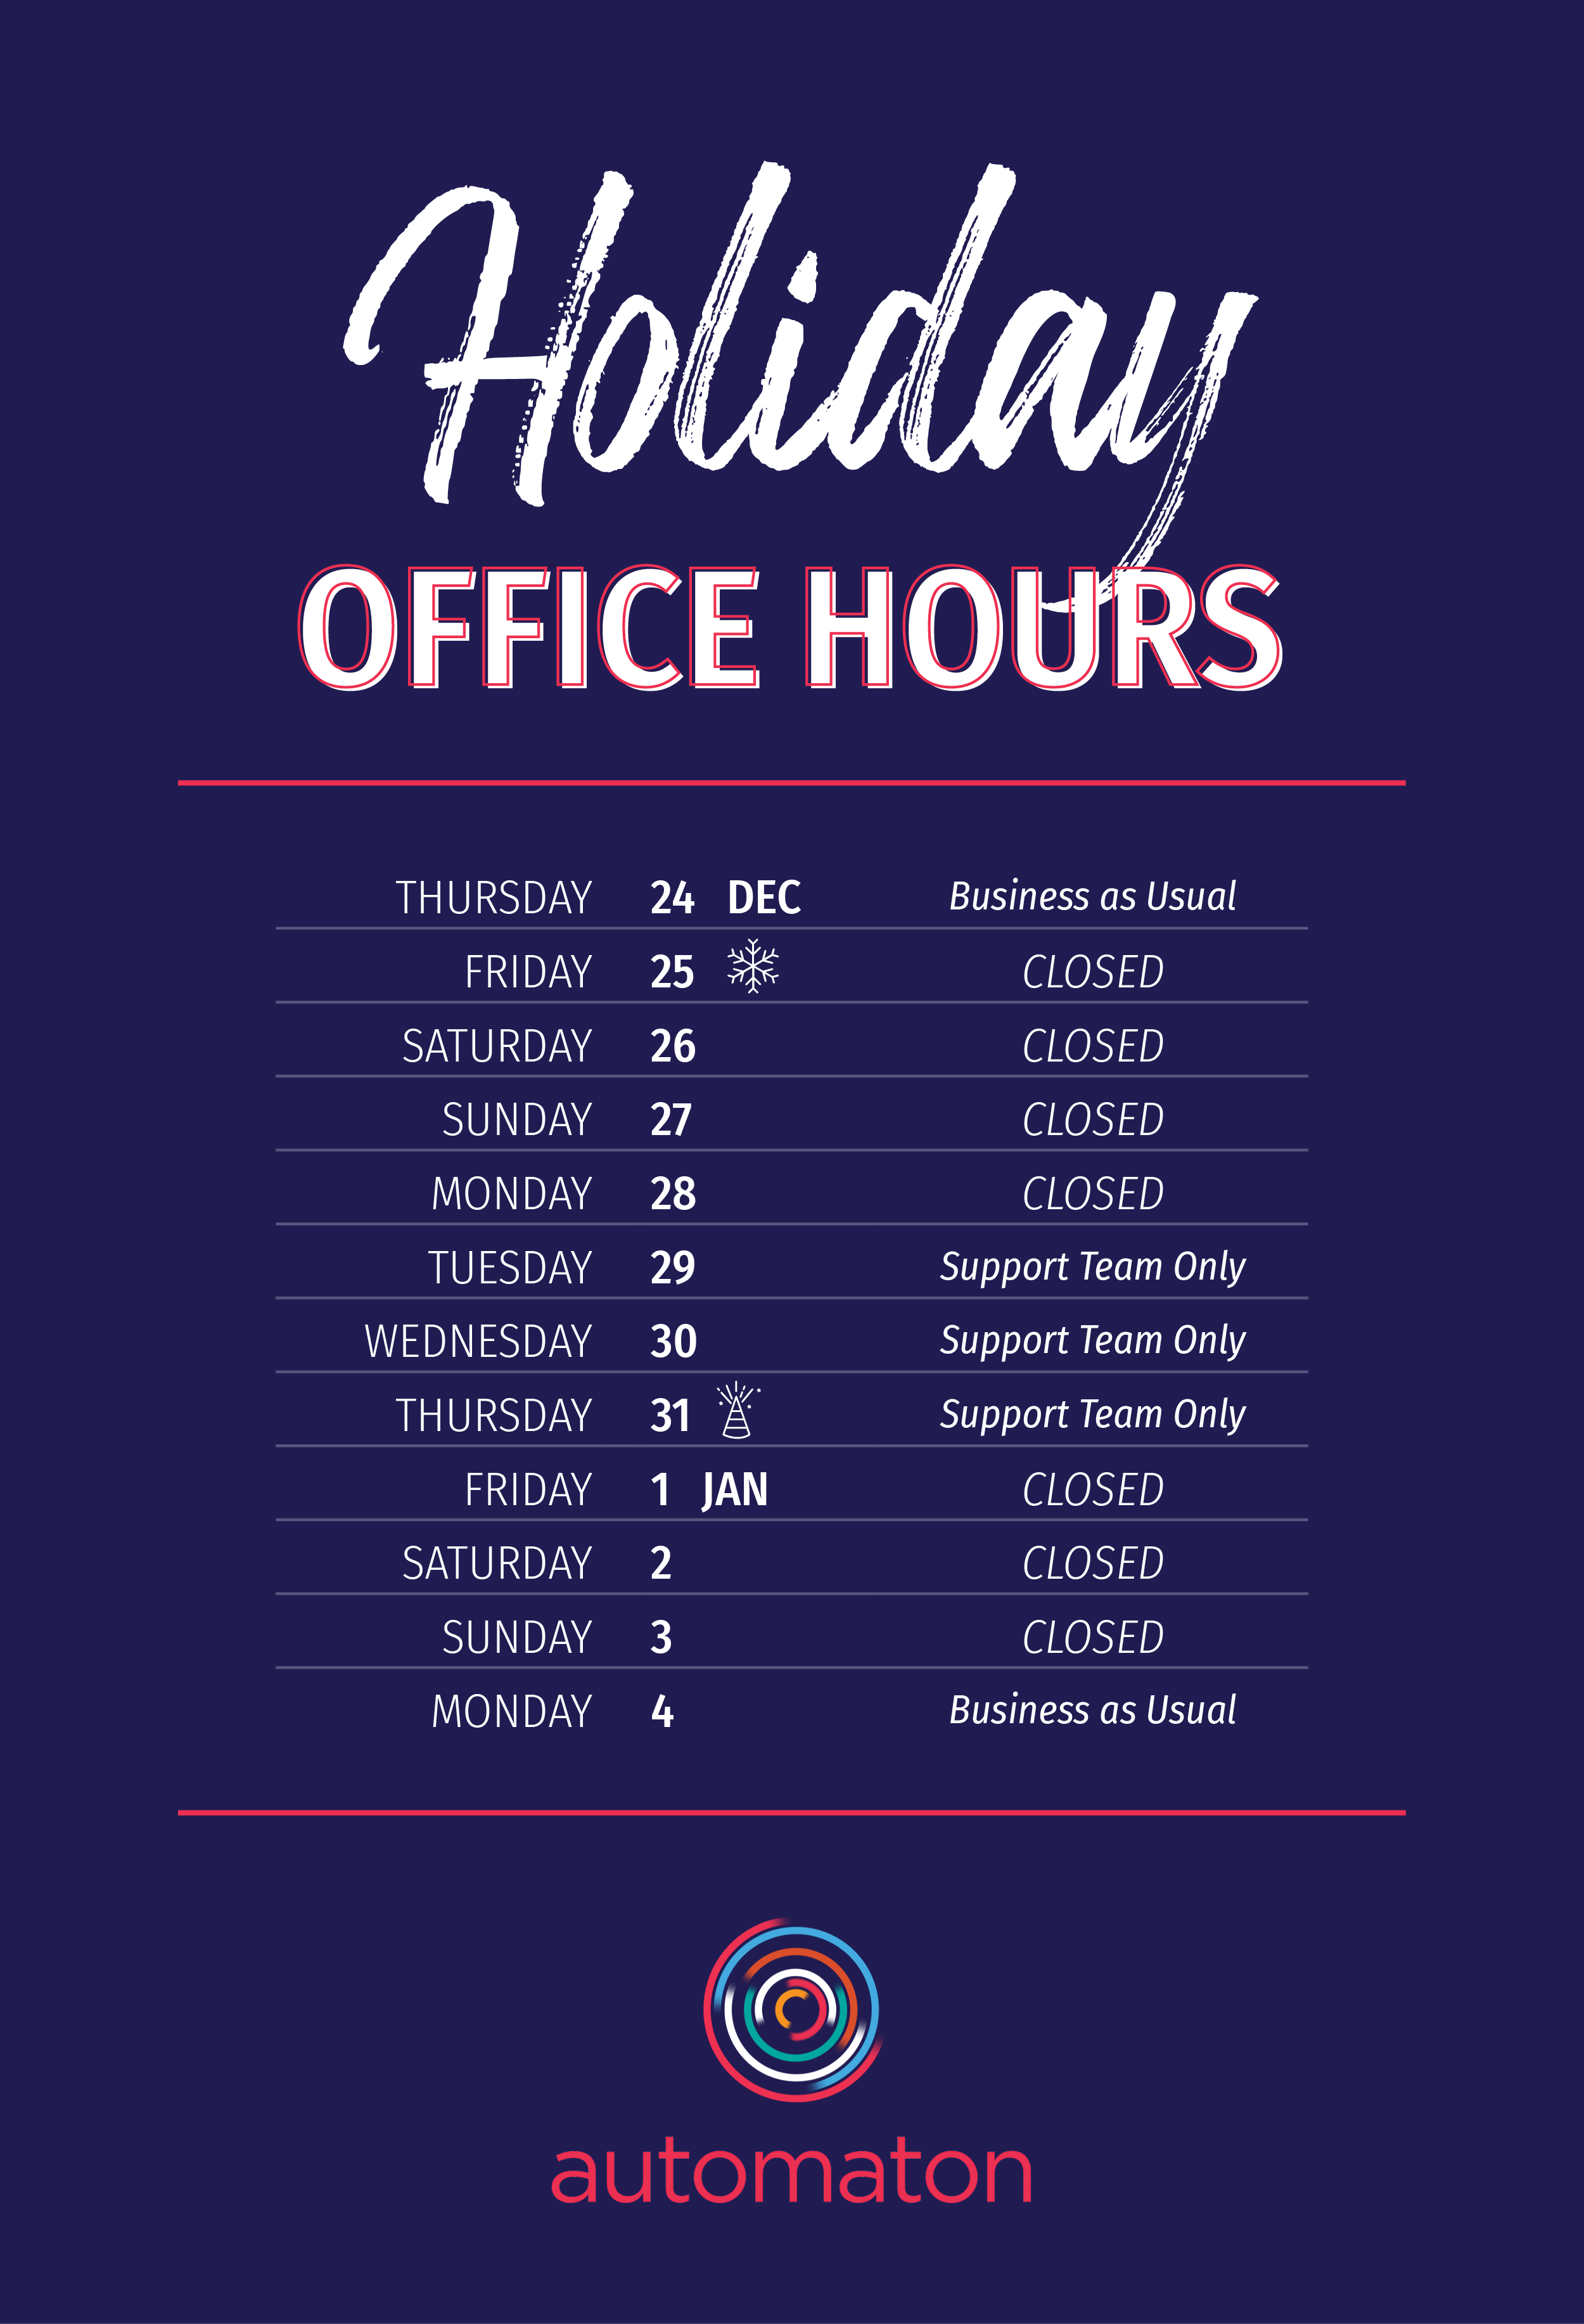 Automaton_Holiday_Office_Hours_2020_Support-2